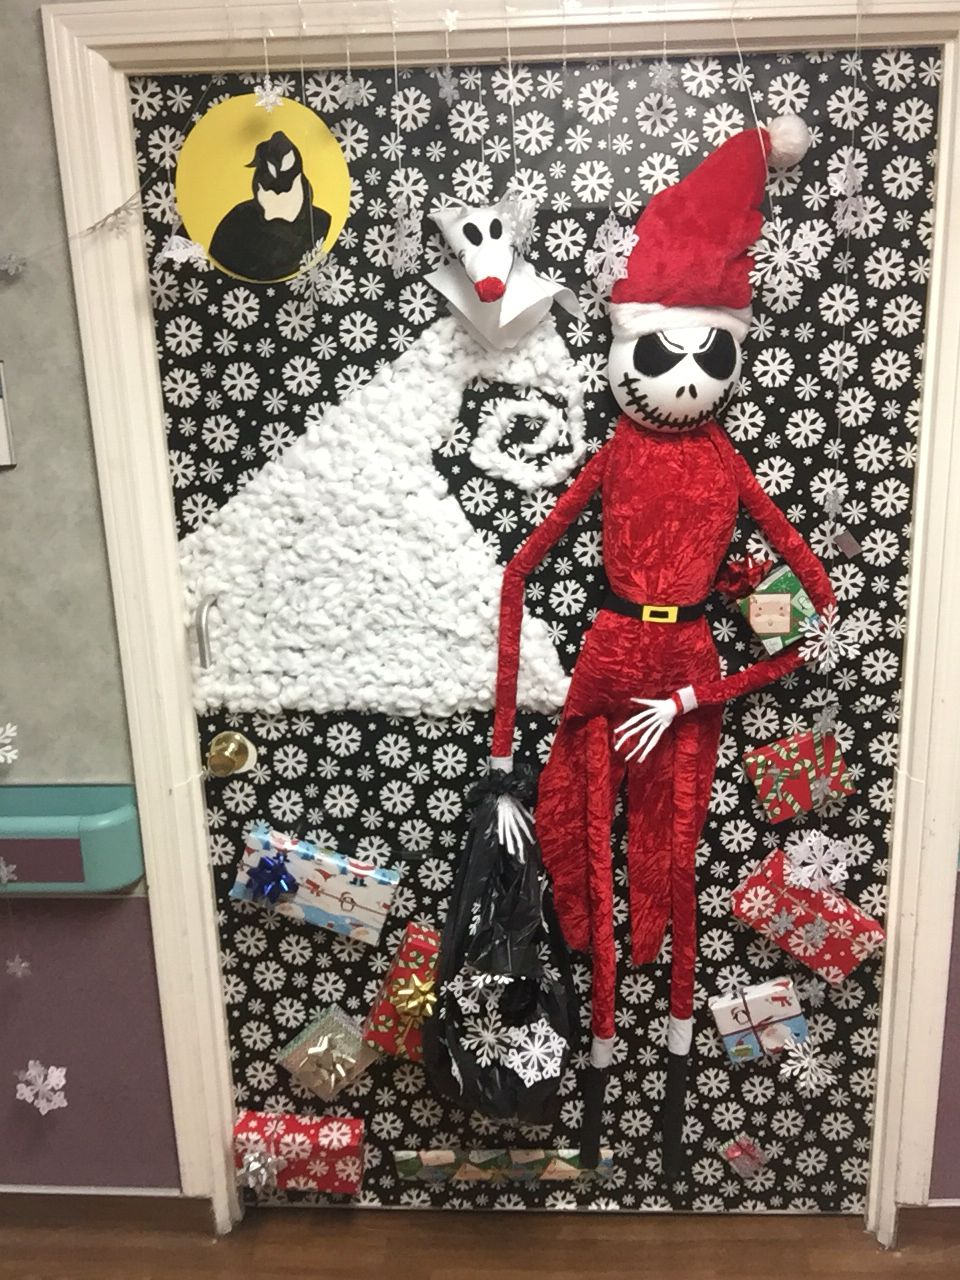 nightmare before christmas door decoration everything is handmade by yours truly and everything was purchased at michaels